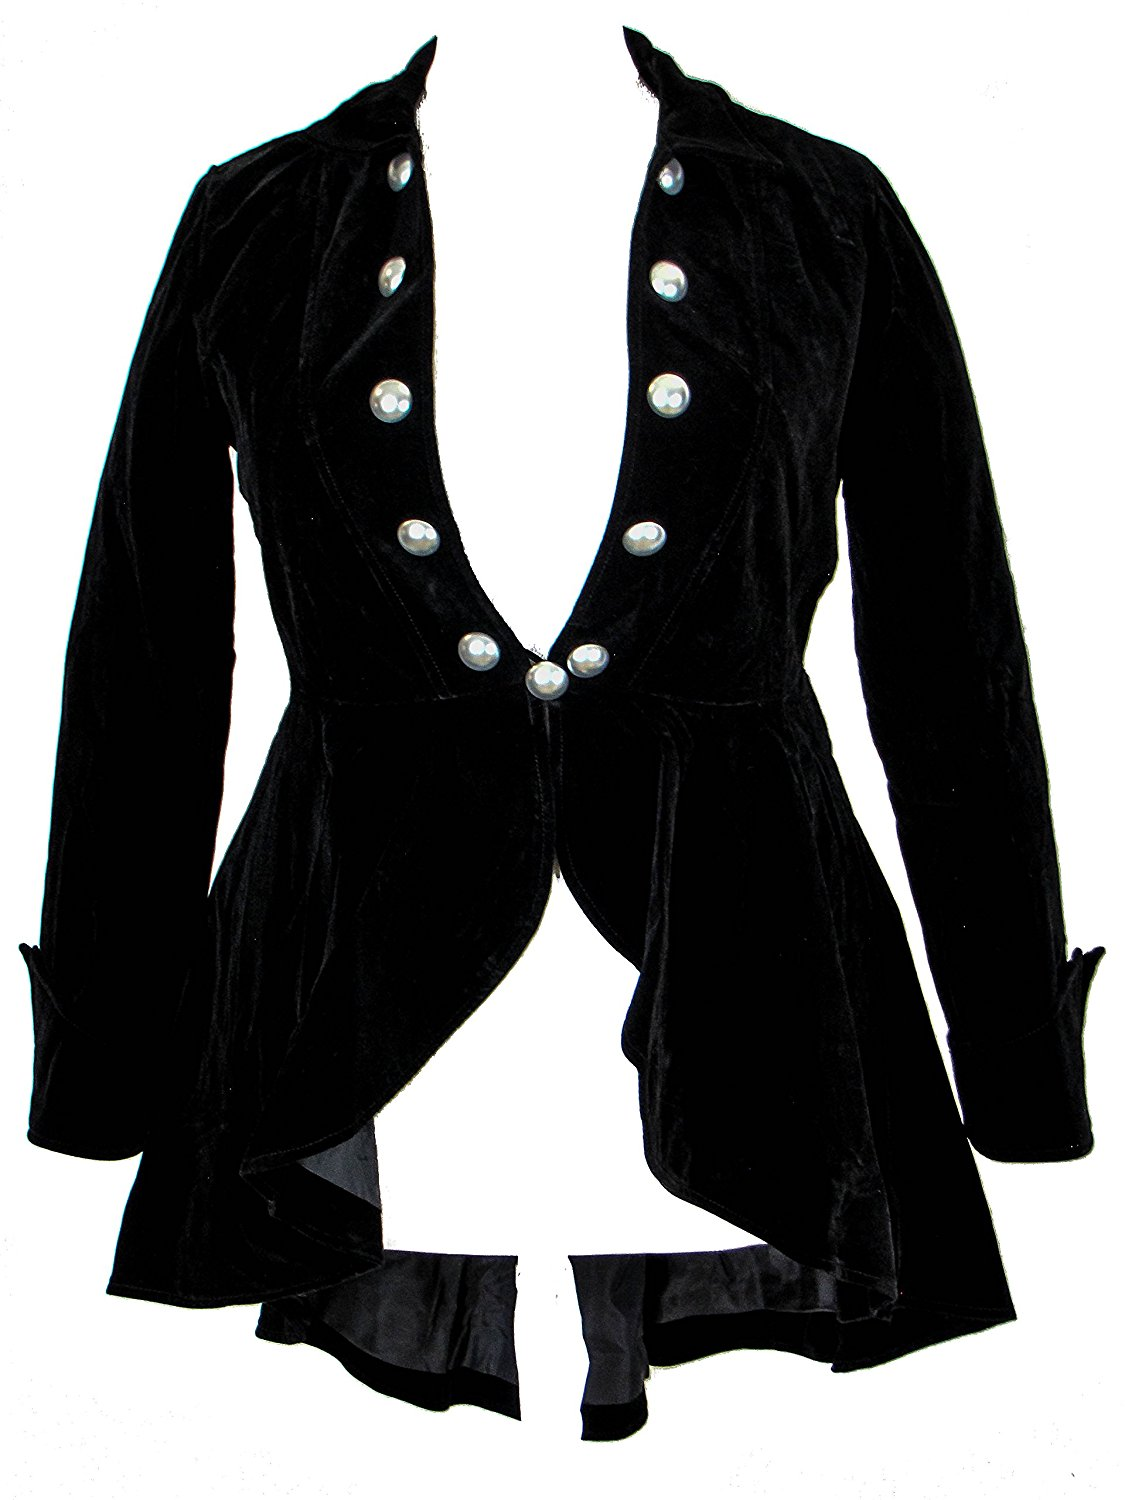 Petite clothing antique riding jacket sale — 8